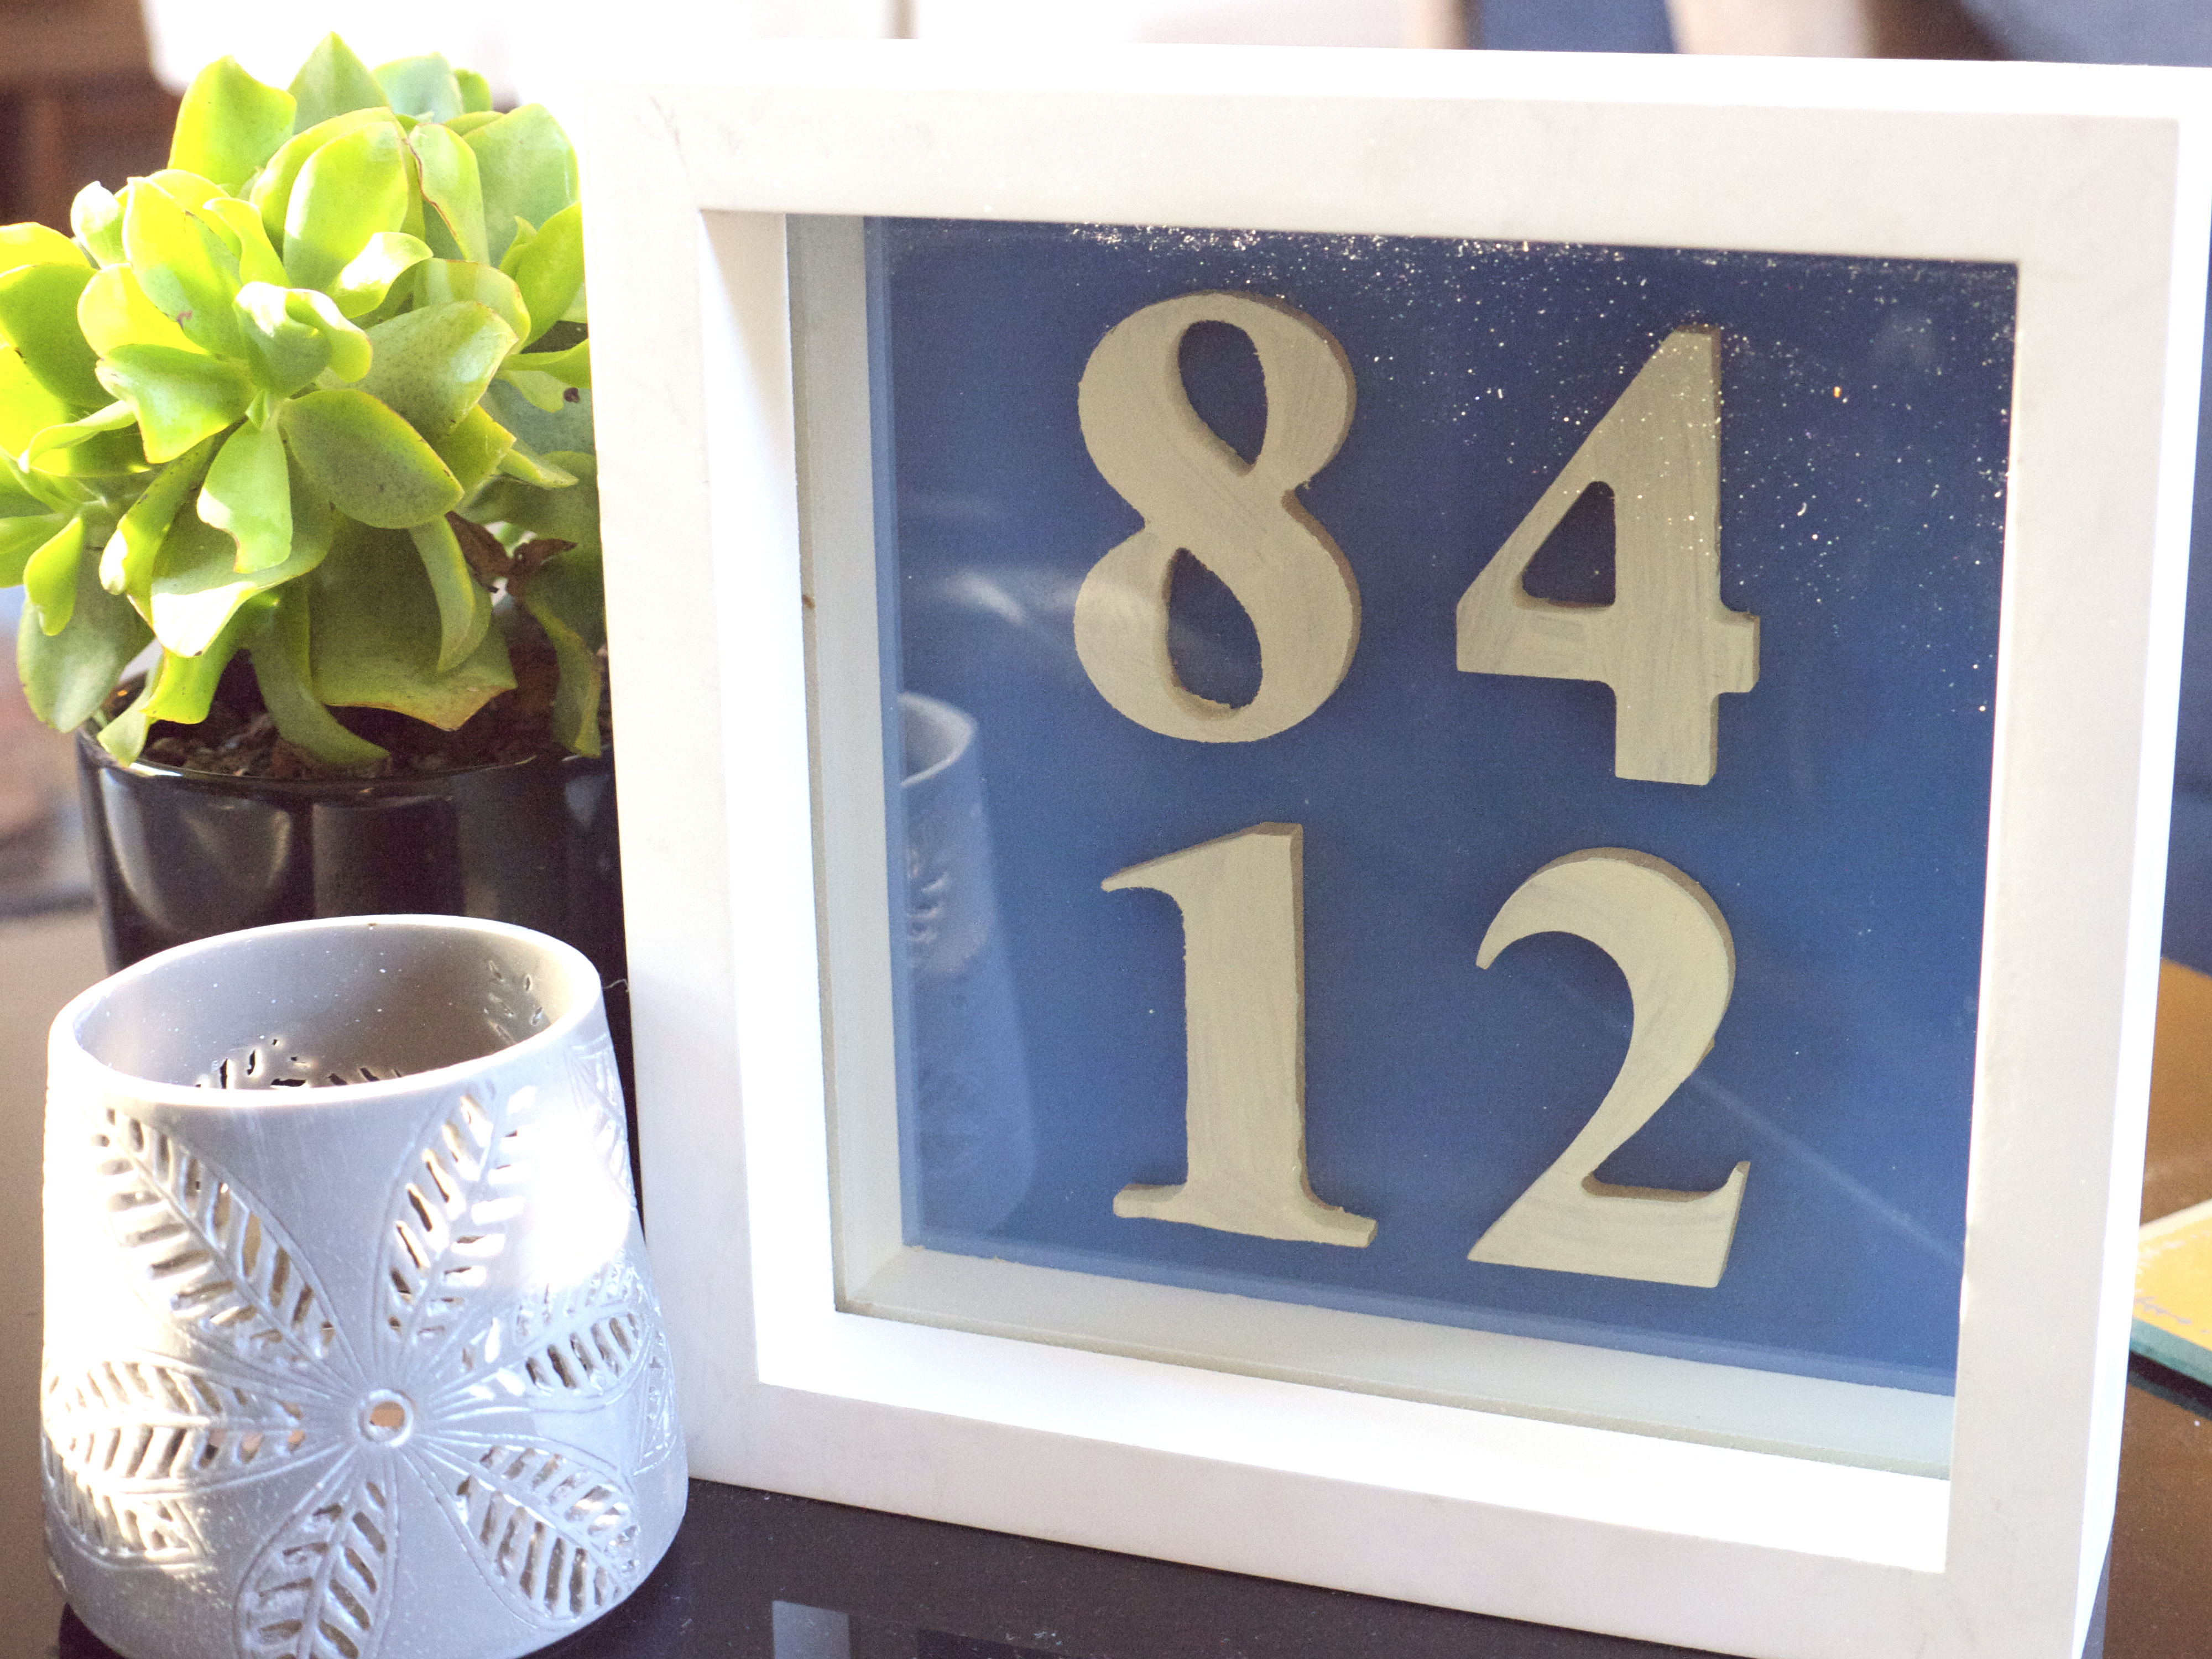 Personalised Art Idea - Put numbers in a box frame